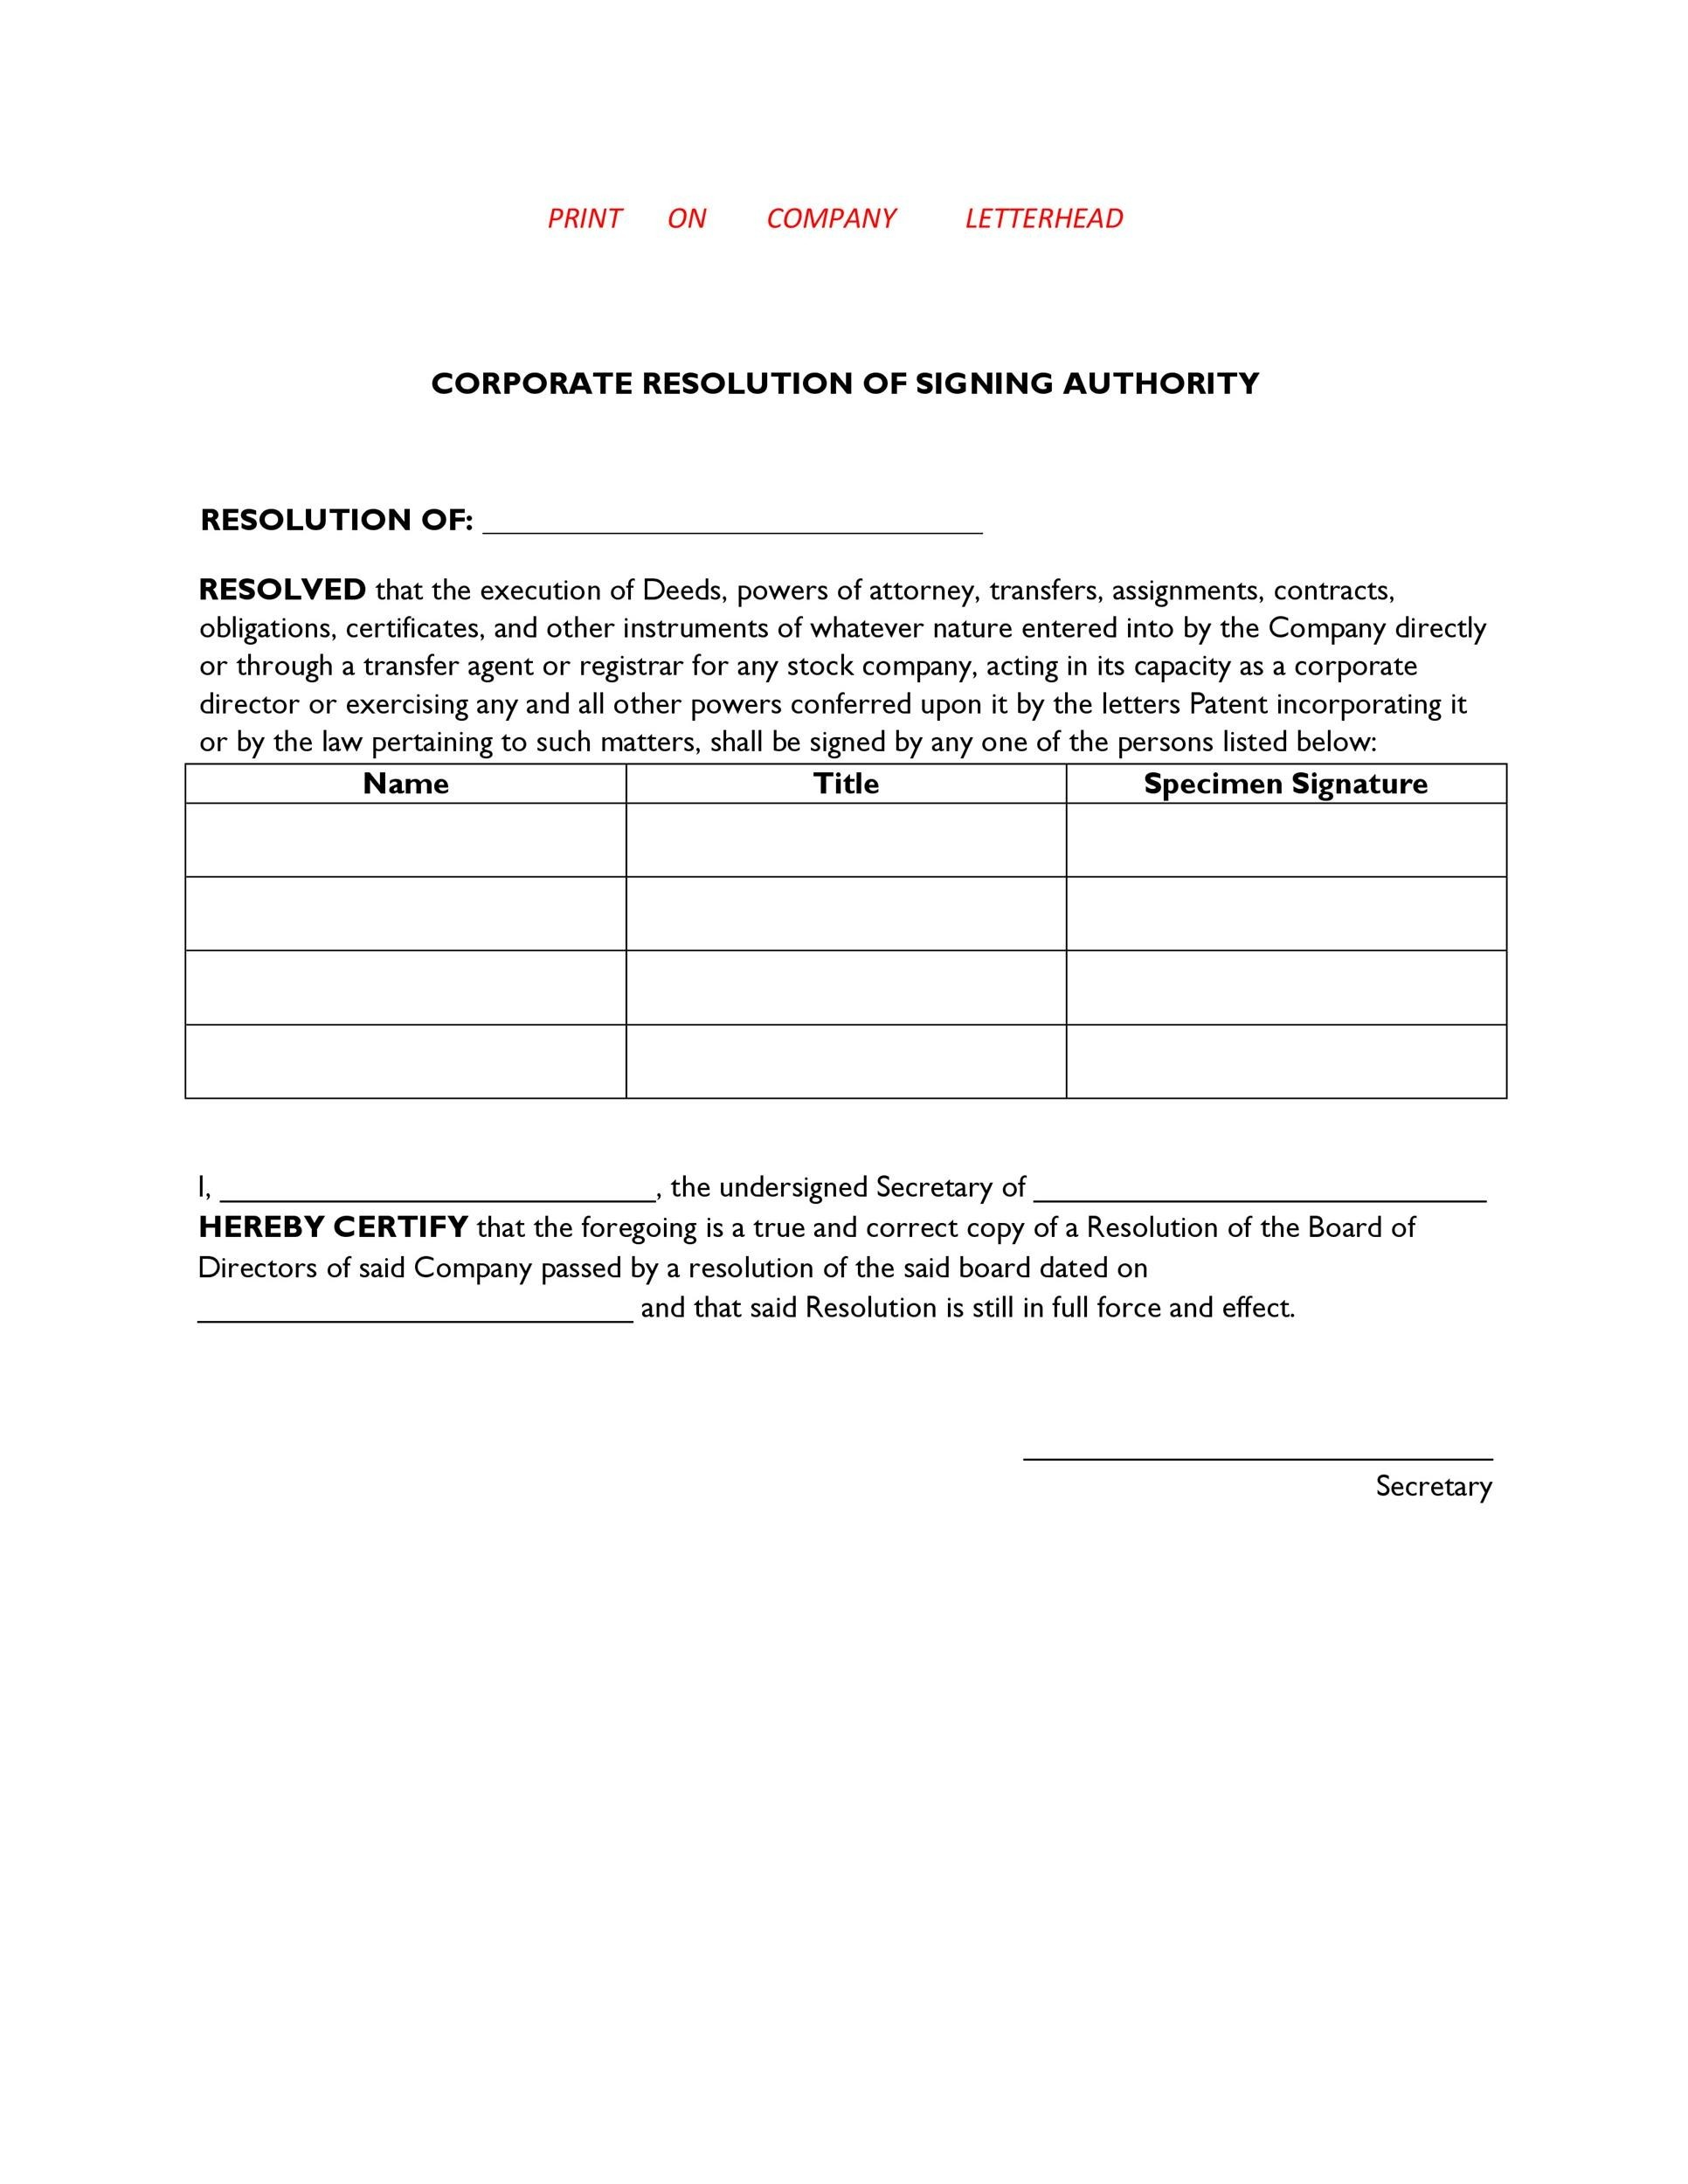 37 Printable Corporate Resolution Forms ᐅ Template Lab